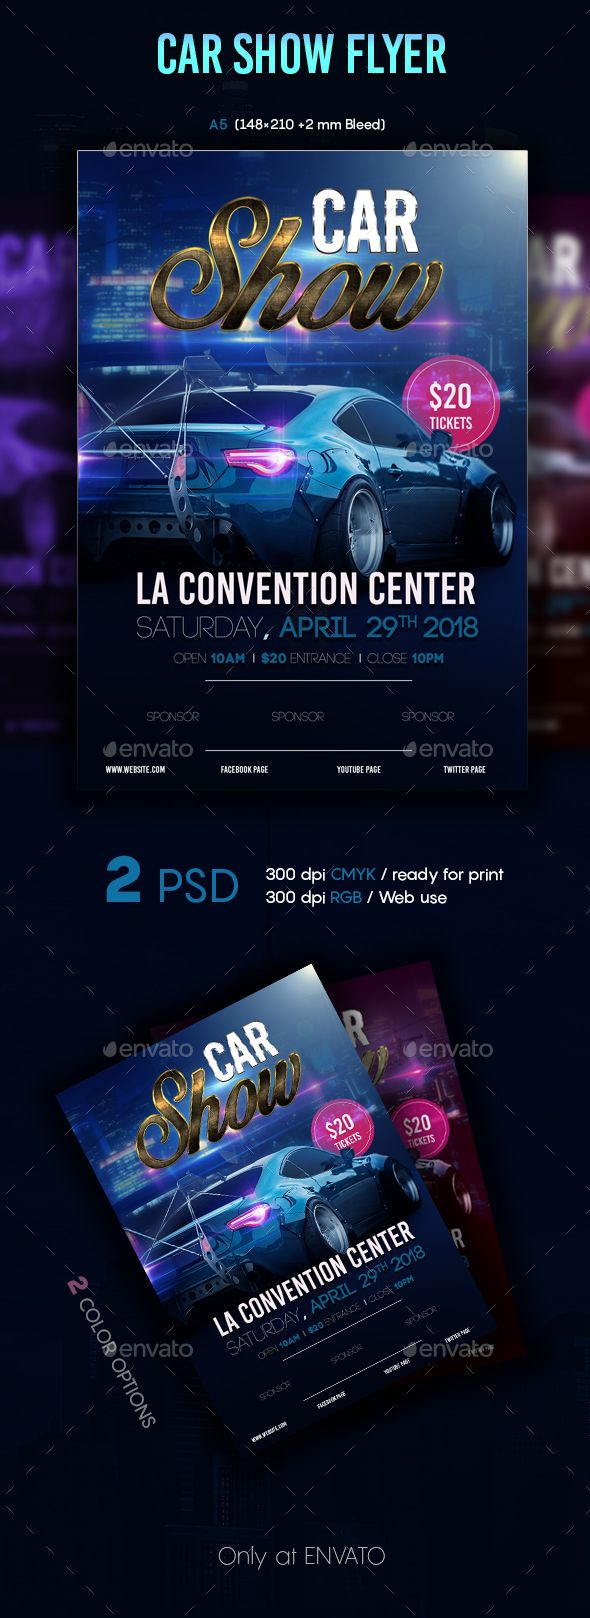 Car Show Flyer Template PSD. Download here https